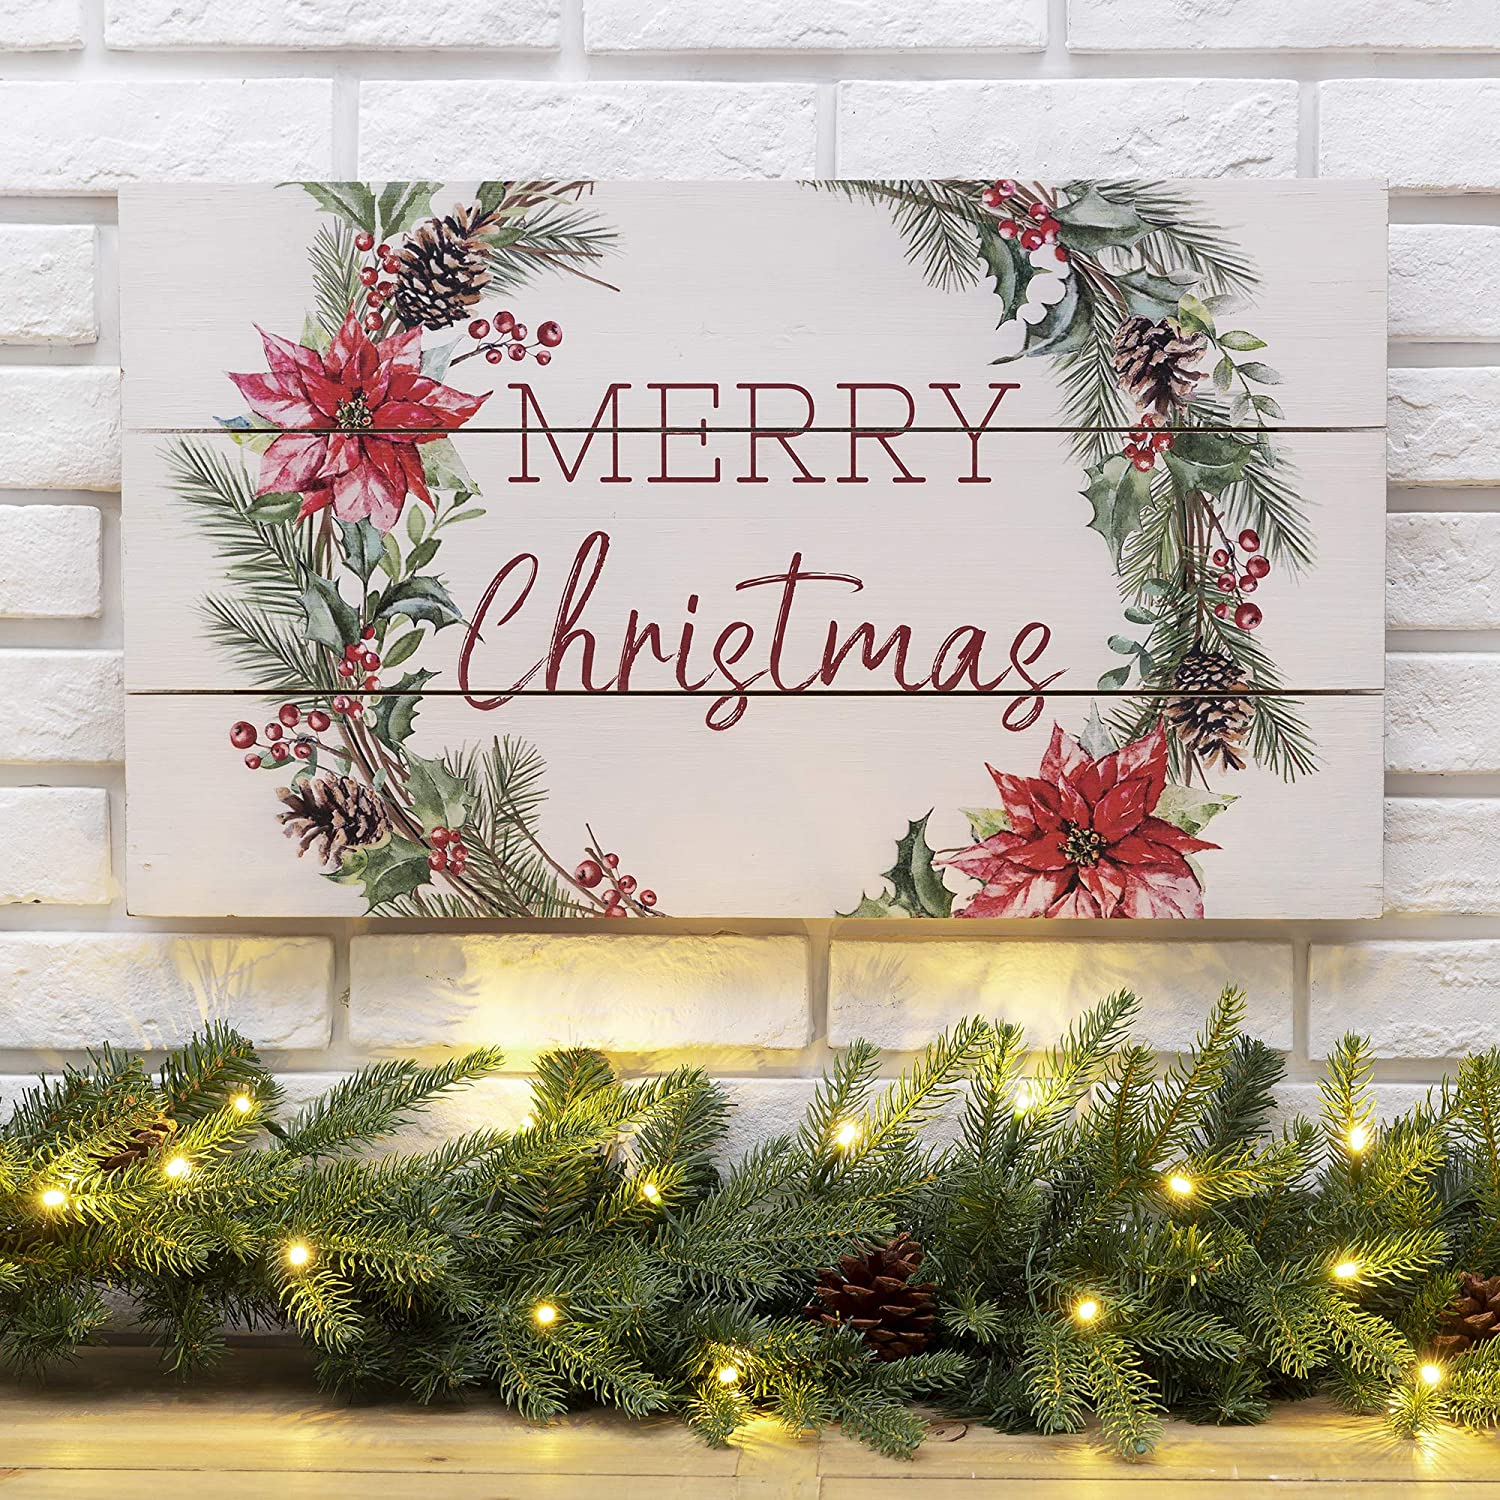 Glitzhome Rustic Christmas Wall Sign Decorative Hanging Wood Wall Art Sign Plaque Decor Distressed Merry Christmas Wall Decor Sign Christmas Home Decor Accent, 24 x 14 Inches